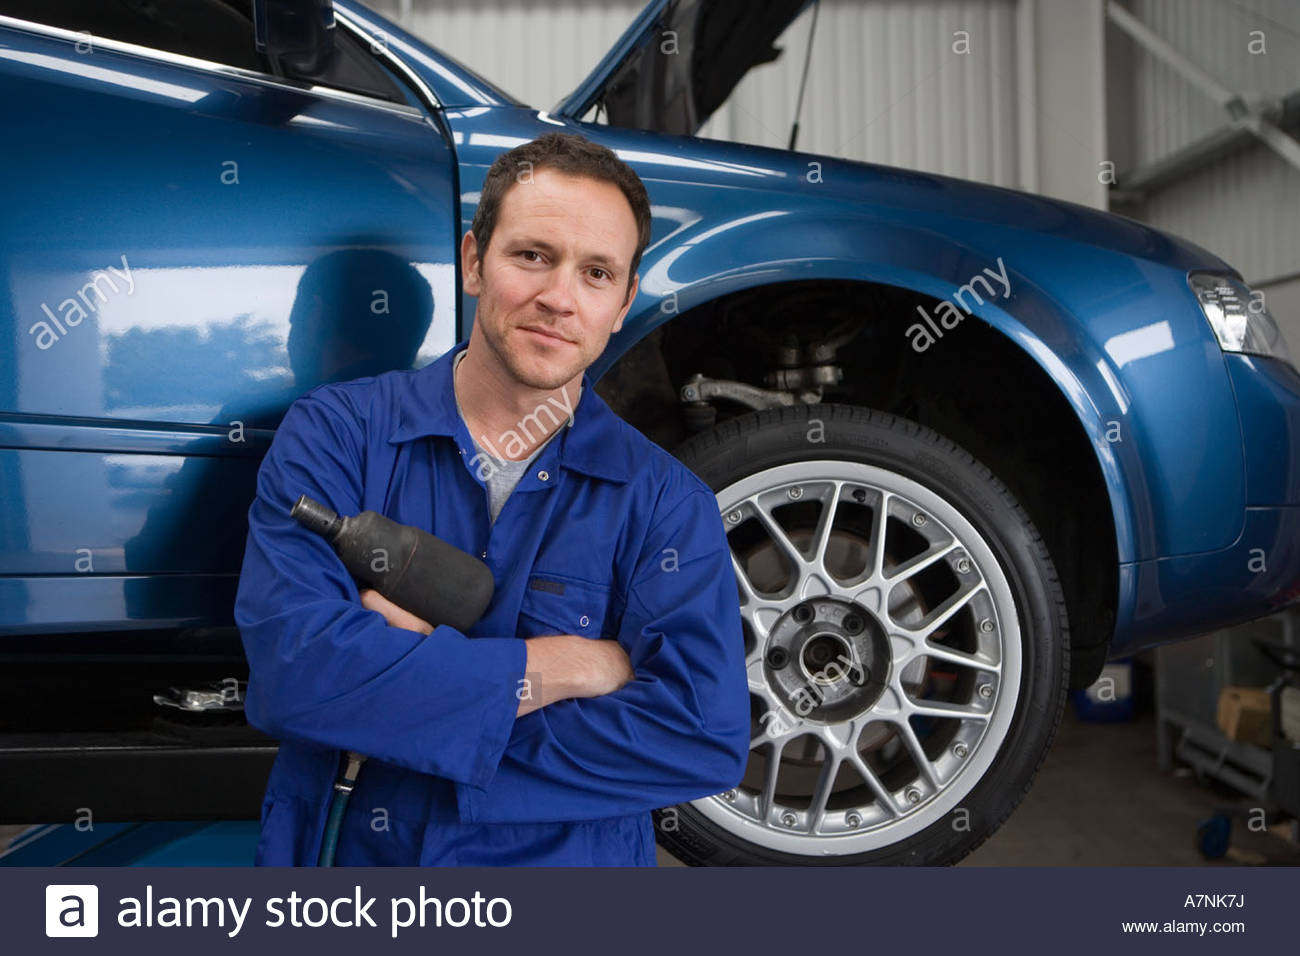 Male mechanic wearing blue overalls standing beside car on hydraulic platform in auto repair shop holding work tool - Stock Image